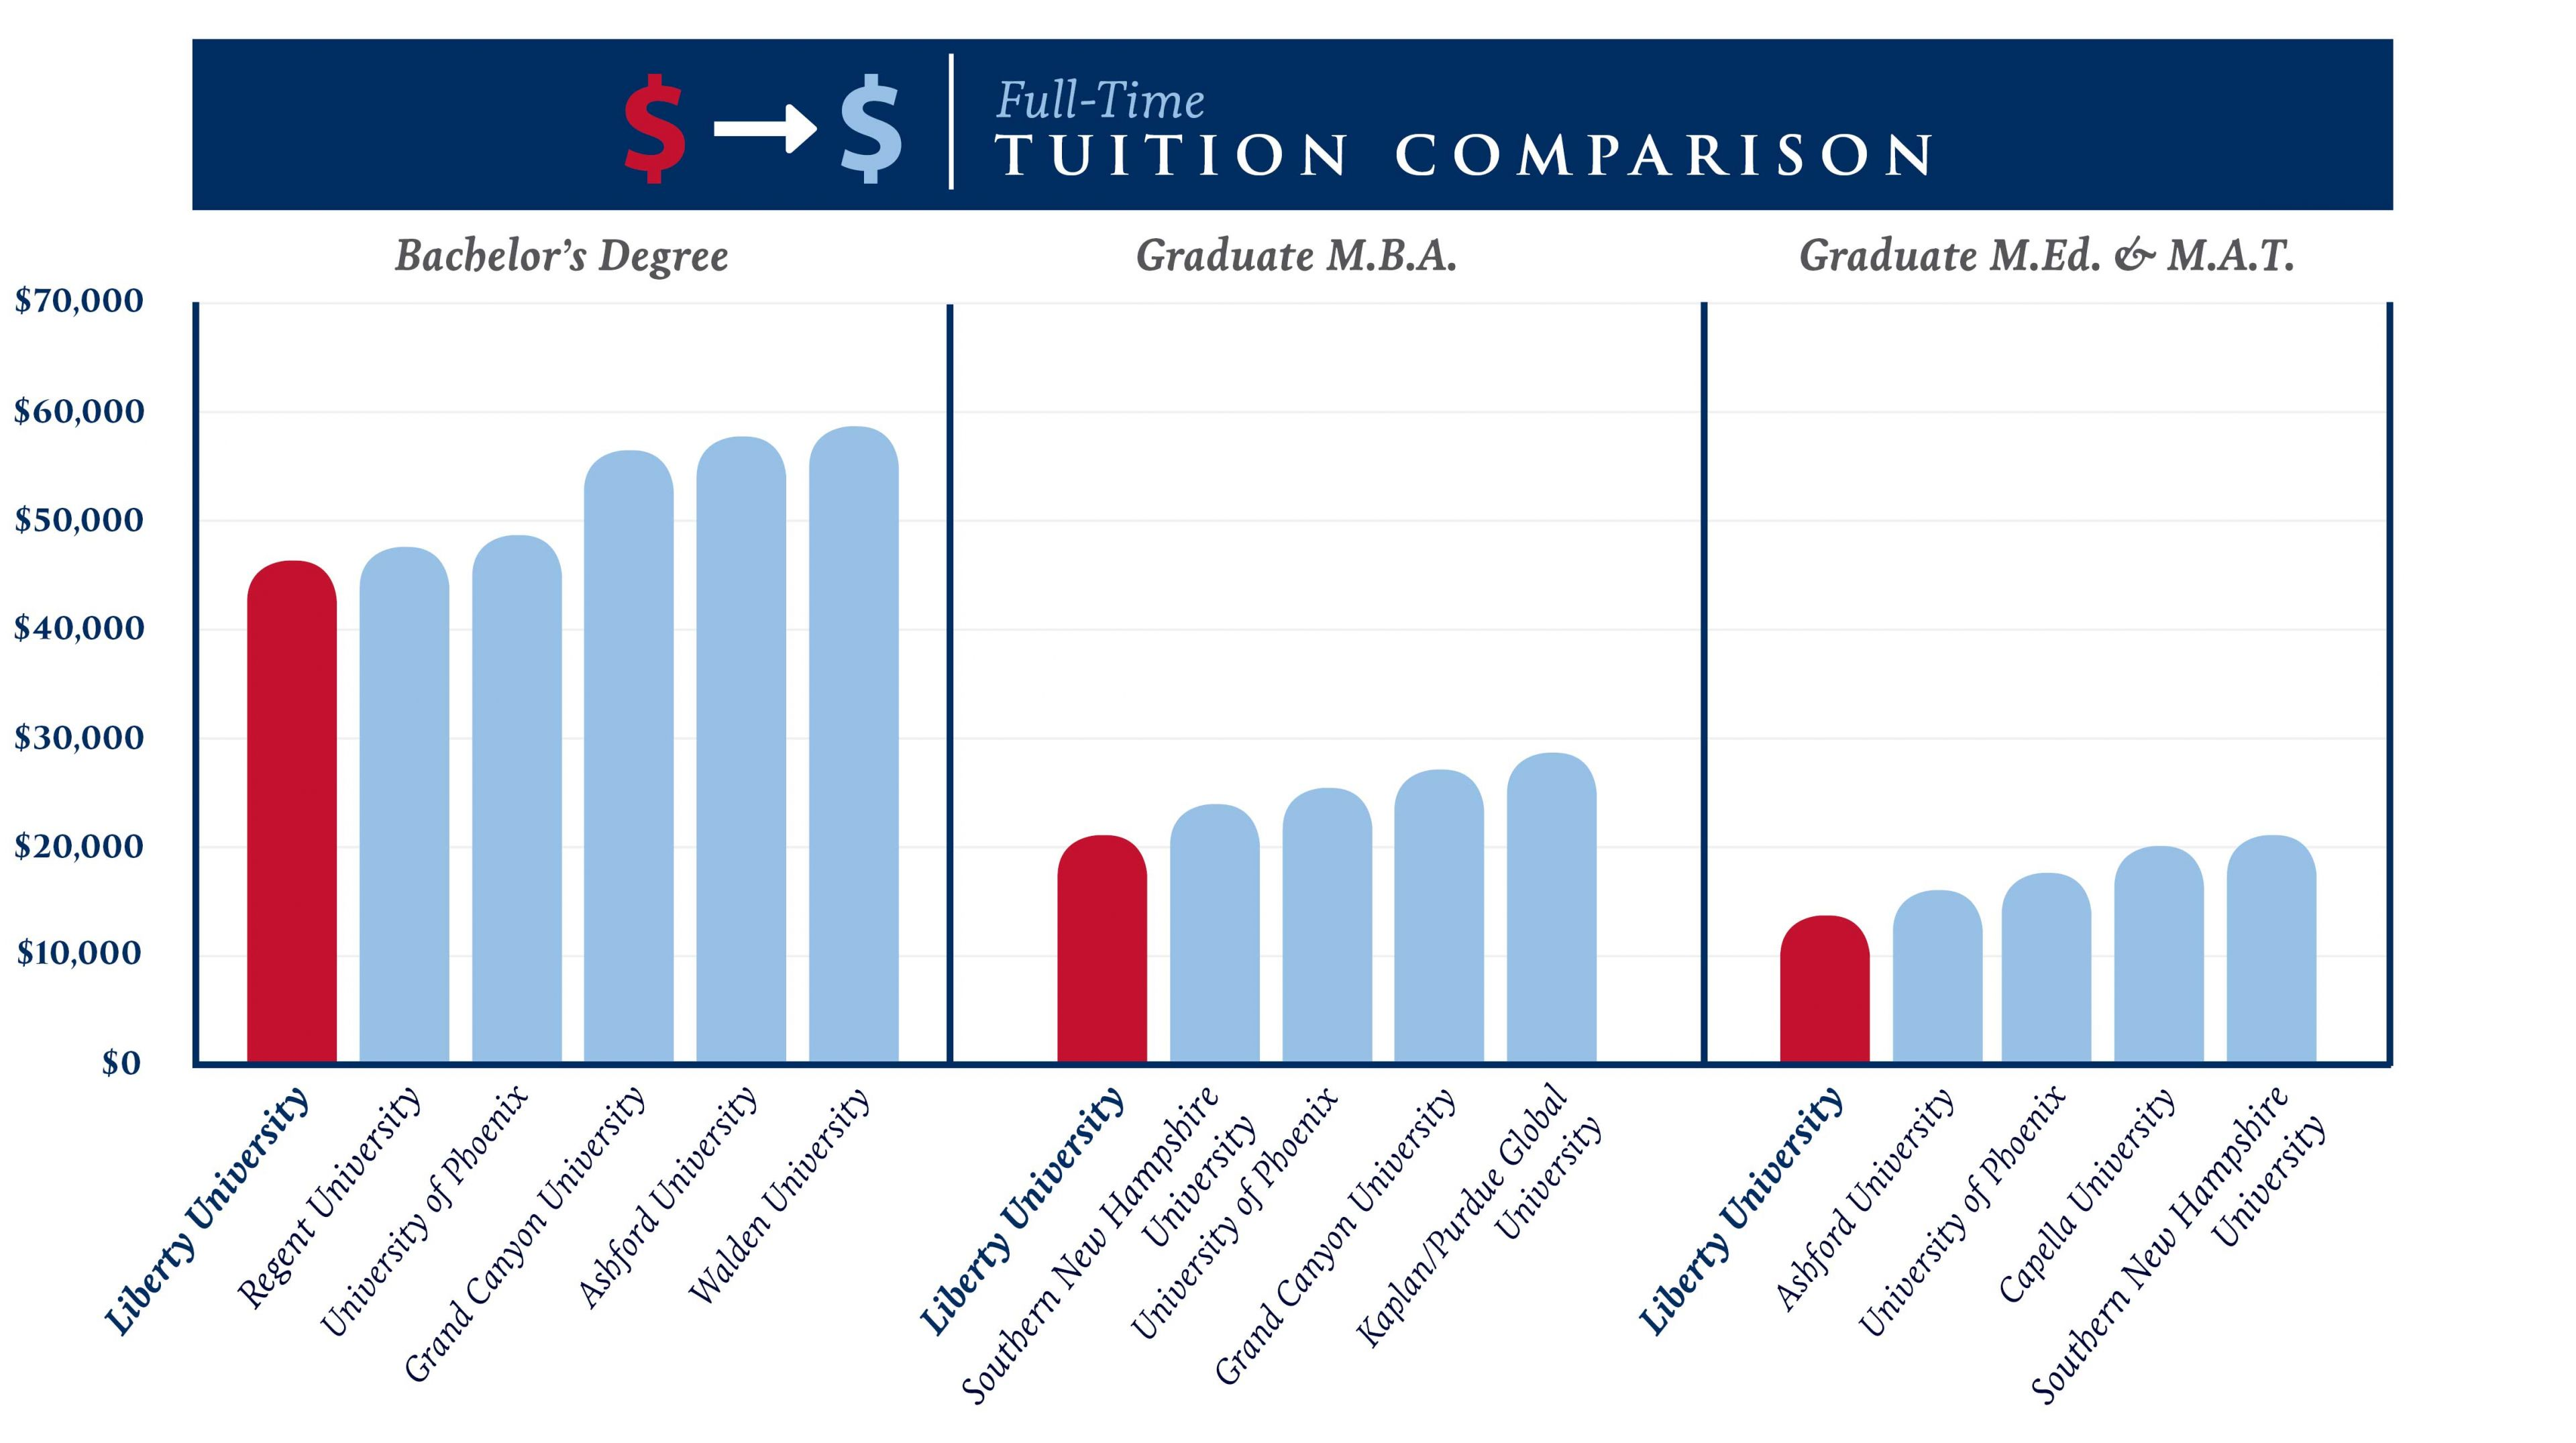 Bar chart comparing Liberty's tuition rates to comparable universities for all degree levels. Liberty tuition rates are lower than those of Regent University, Grand Canyon University, The University of Phoenix, Capella University, and Walden University.